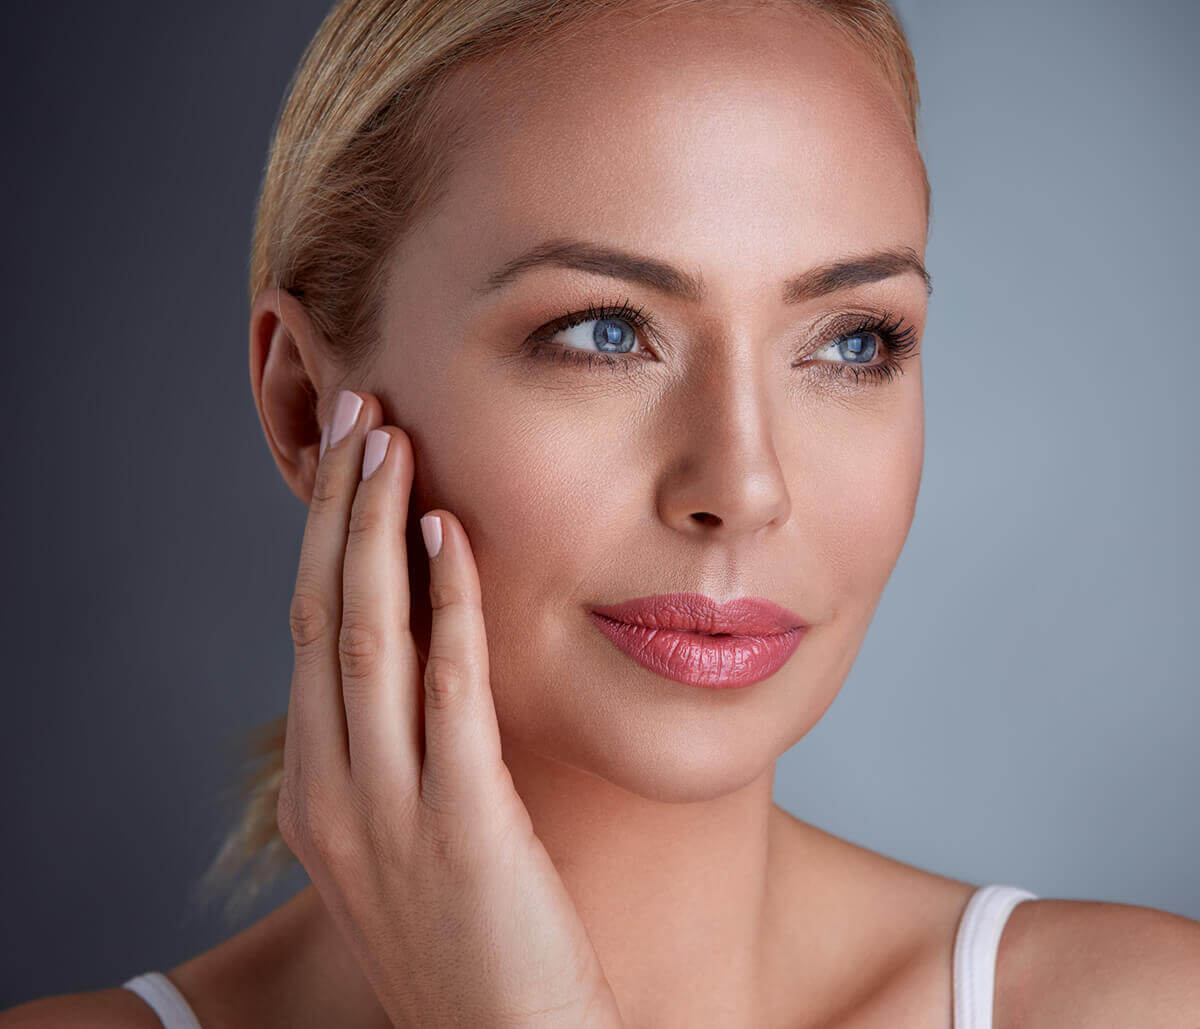 Important Facts to Know About Fraxel Dual Laser Treatment for Wrinkles in Hamilton, ON